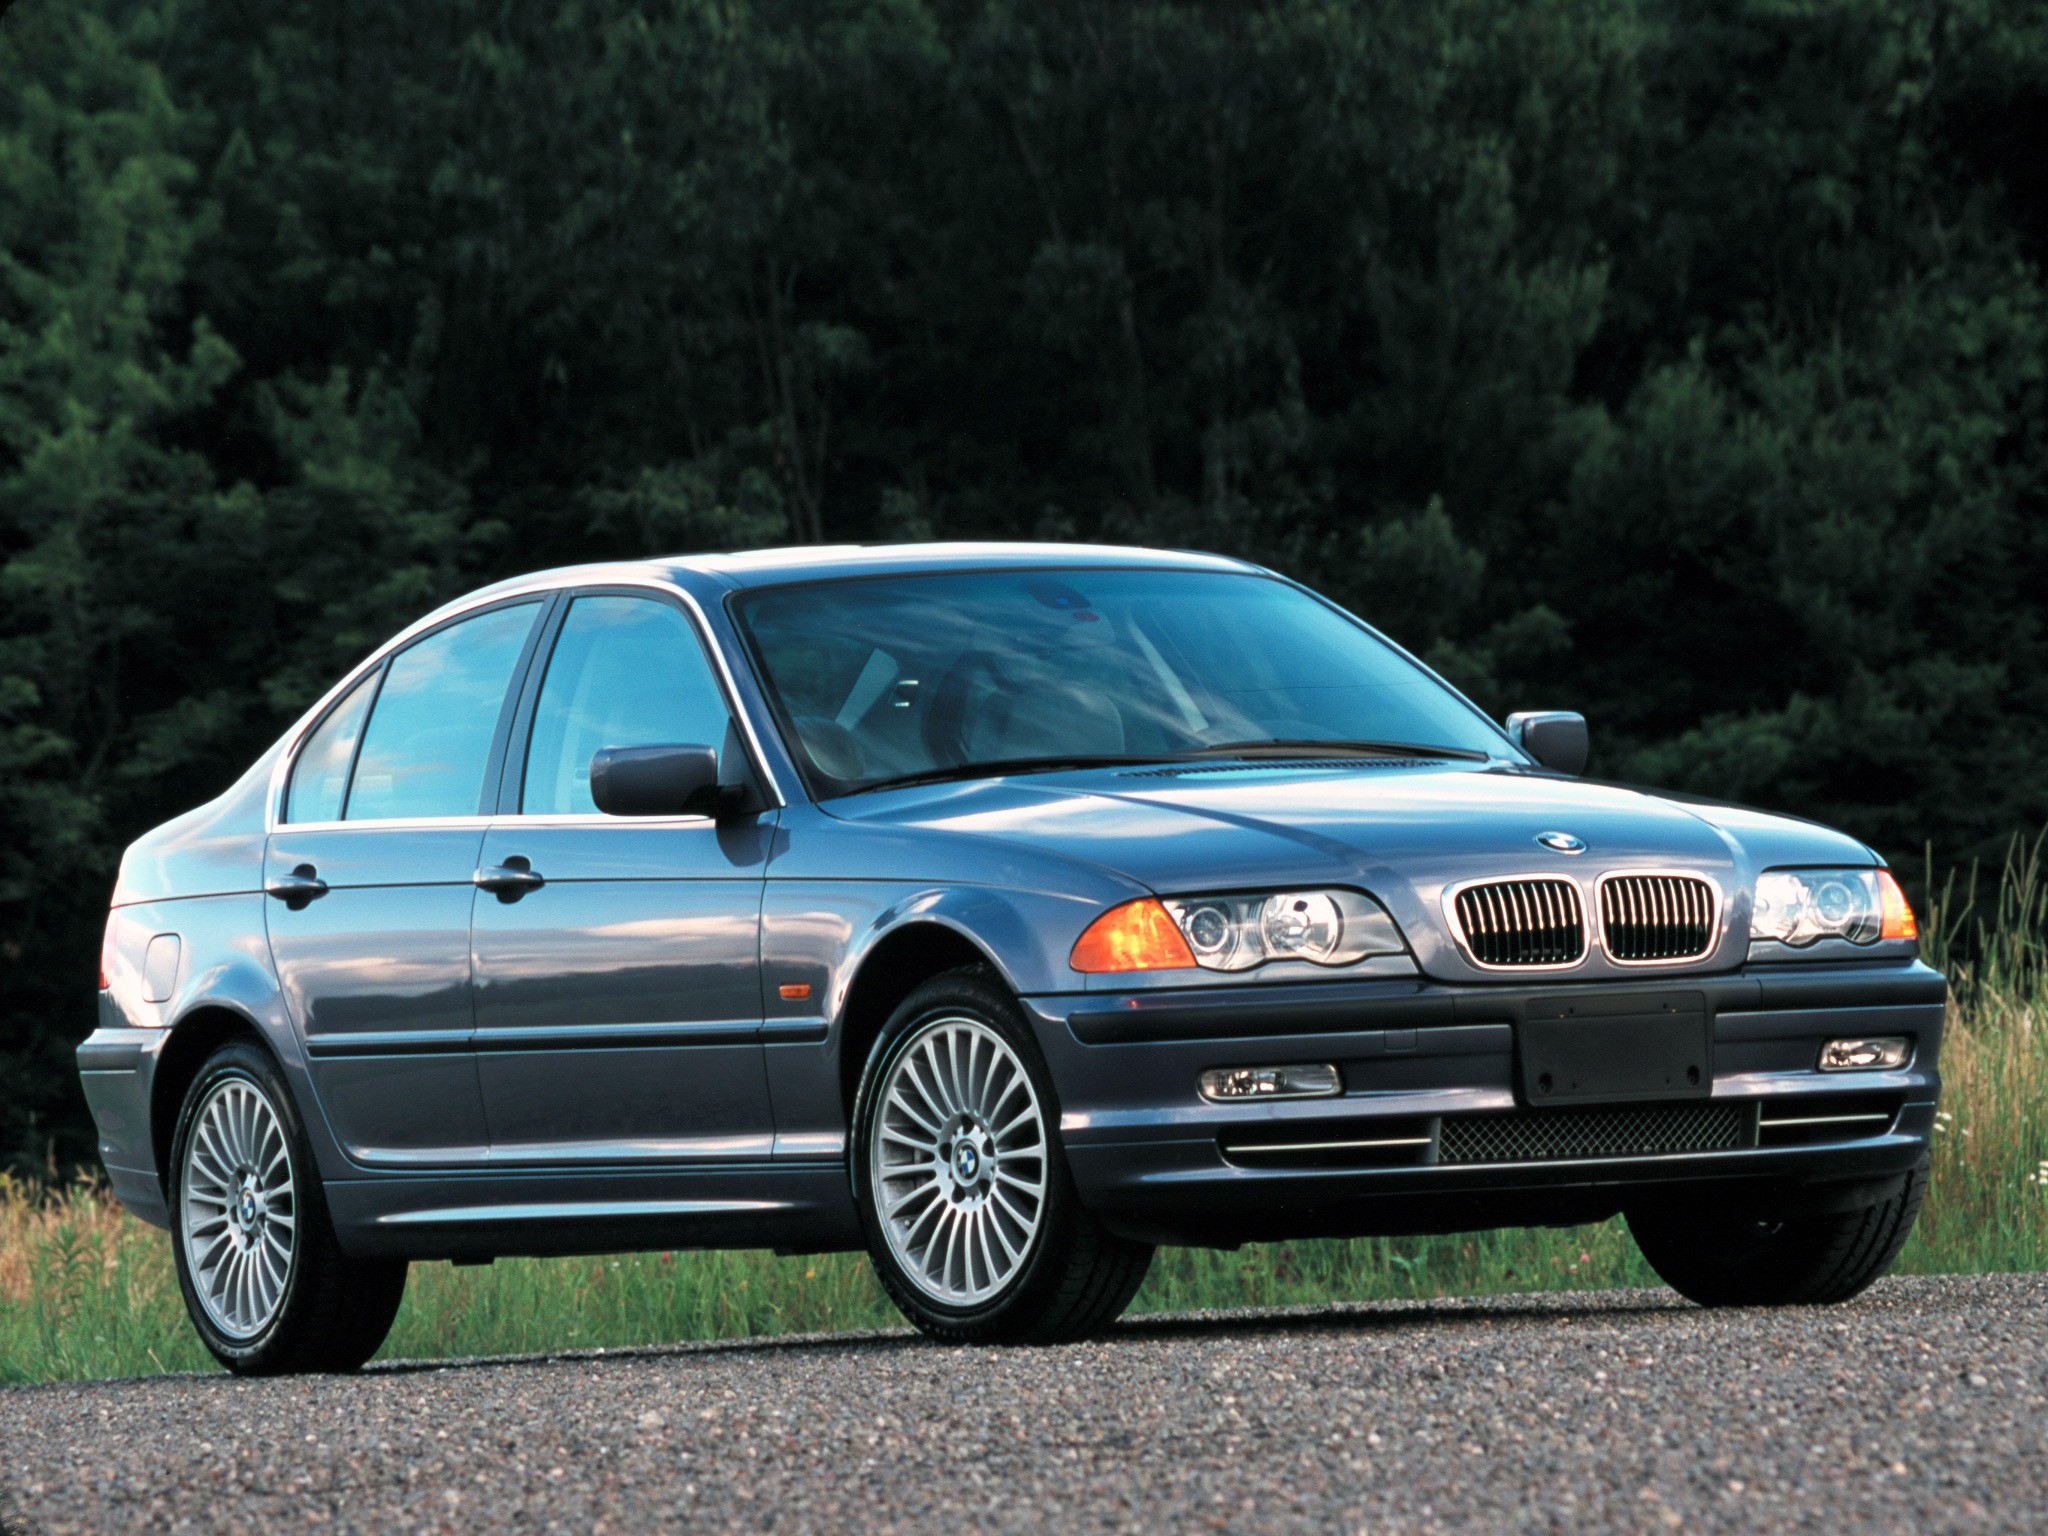 BMW 3 series 330xi 1999 photo - 11